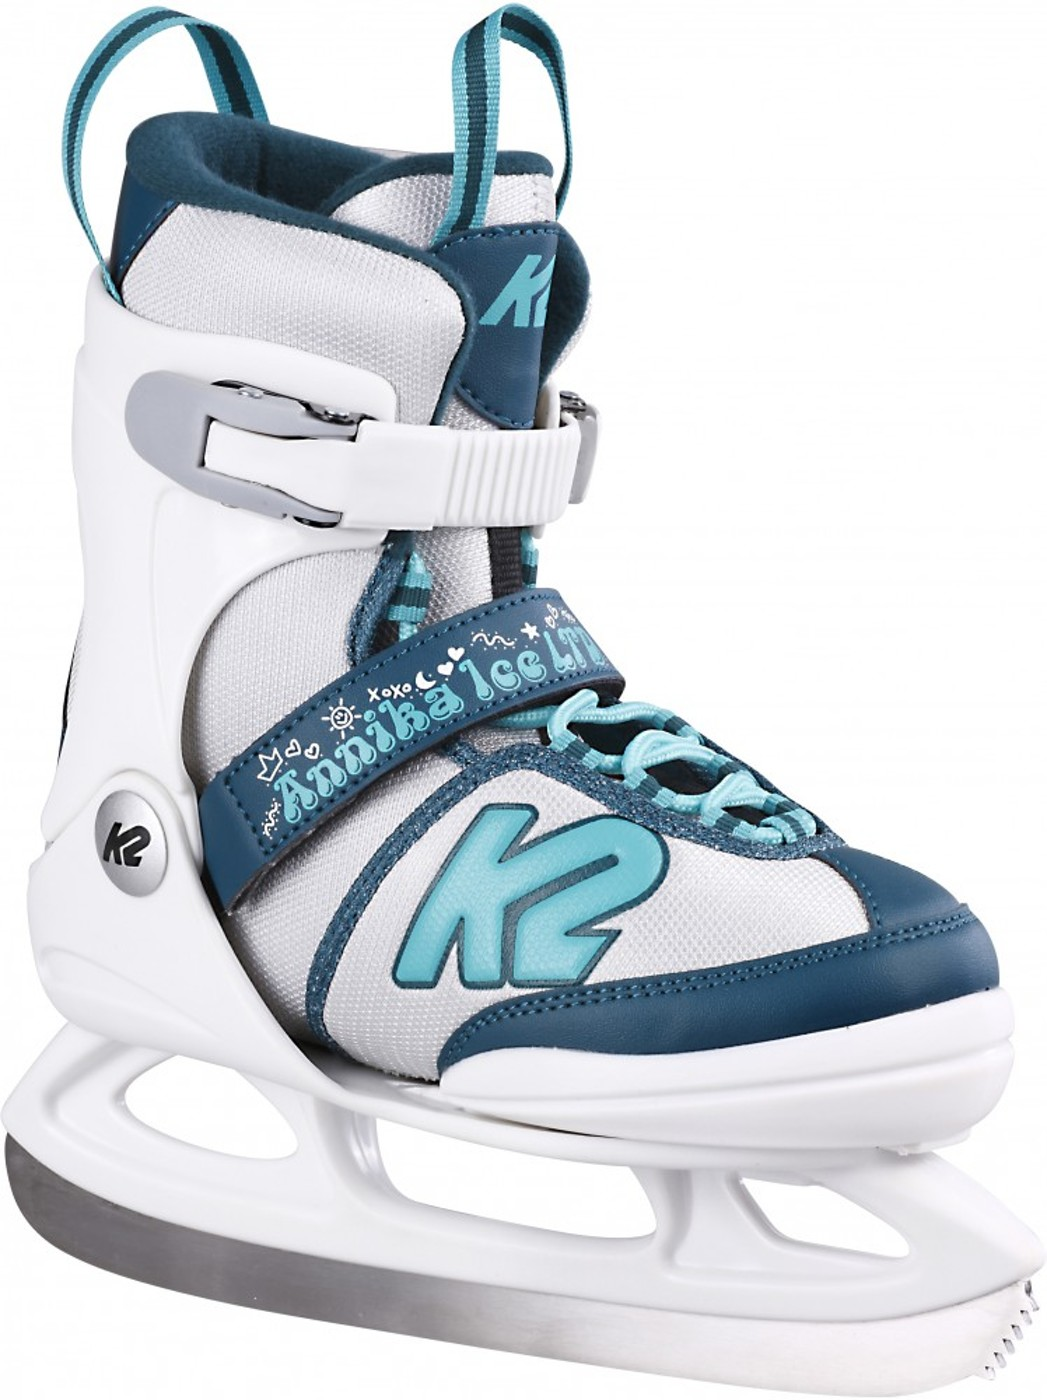 K2 ANNIKA ICE LTD - Kinder